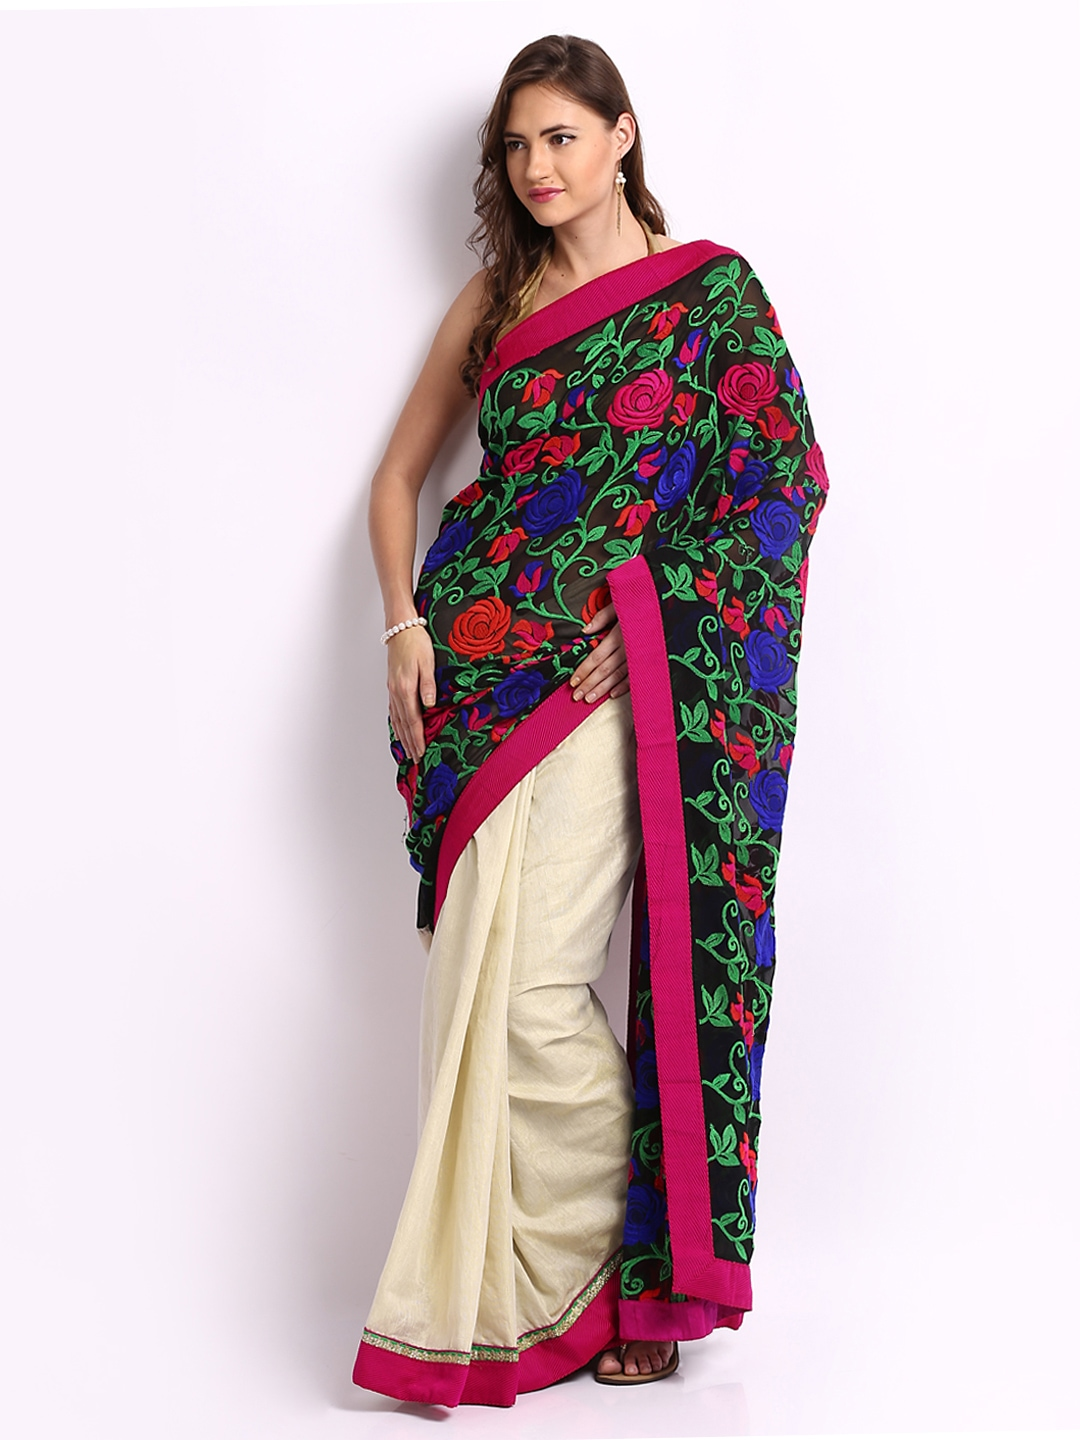 Ambica Black amp; Cream Coloured Embroidered Georgette Fashion Saree available at Myntra for Rs.379020